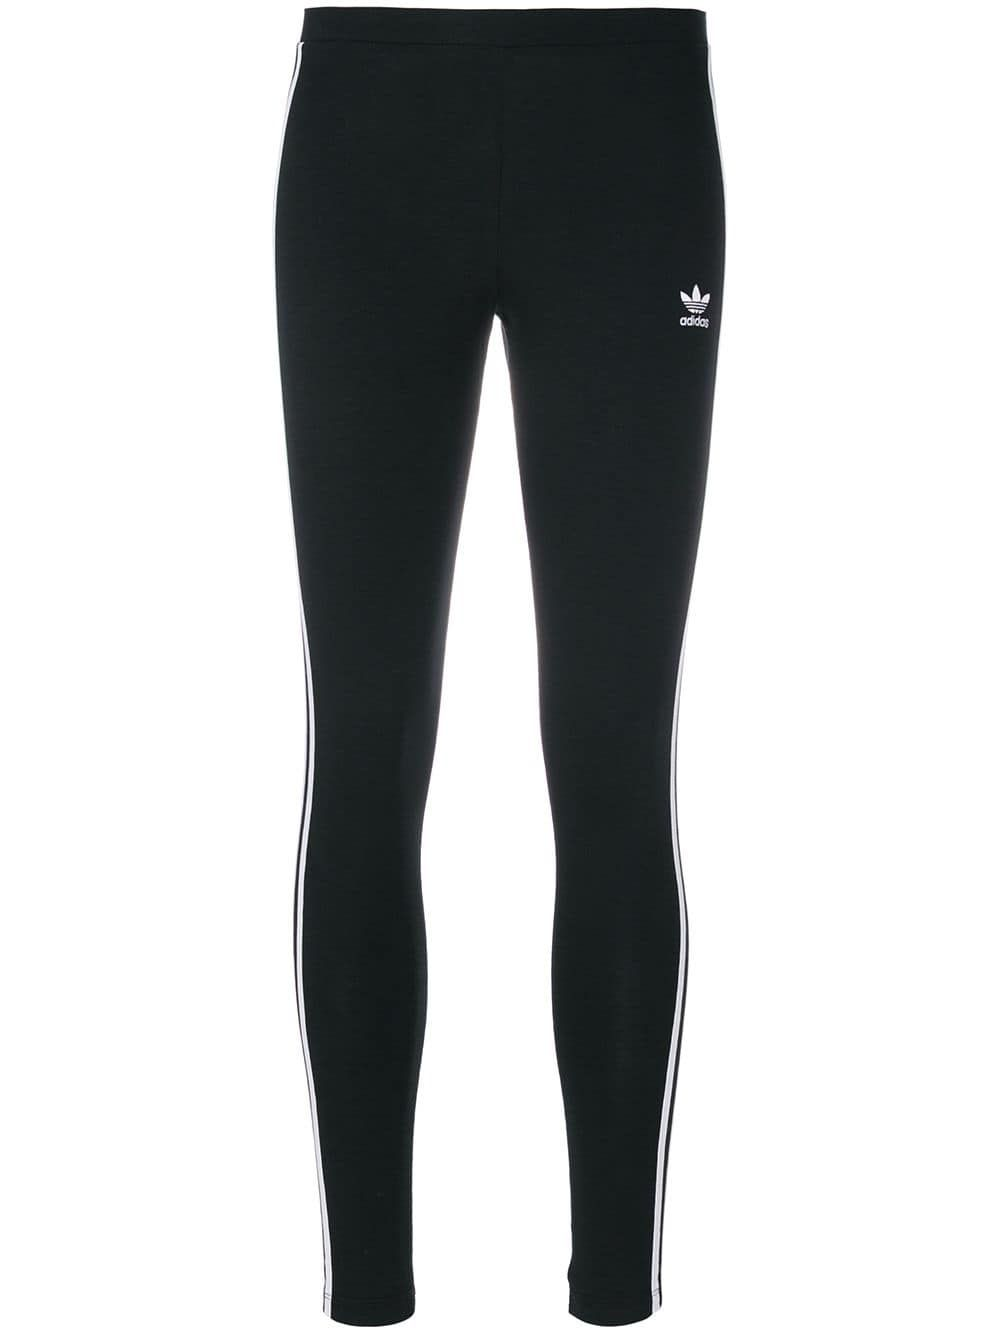 Adidas Adidas Originals 3-Stripes Leggings #stripedleggings